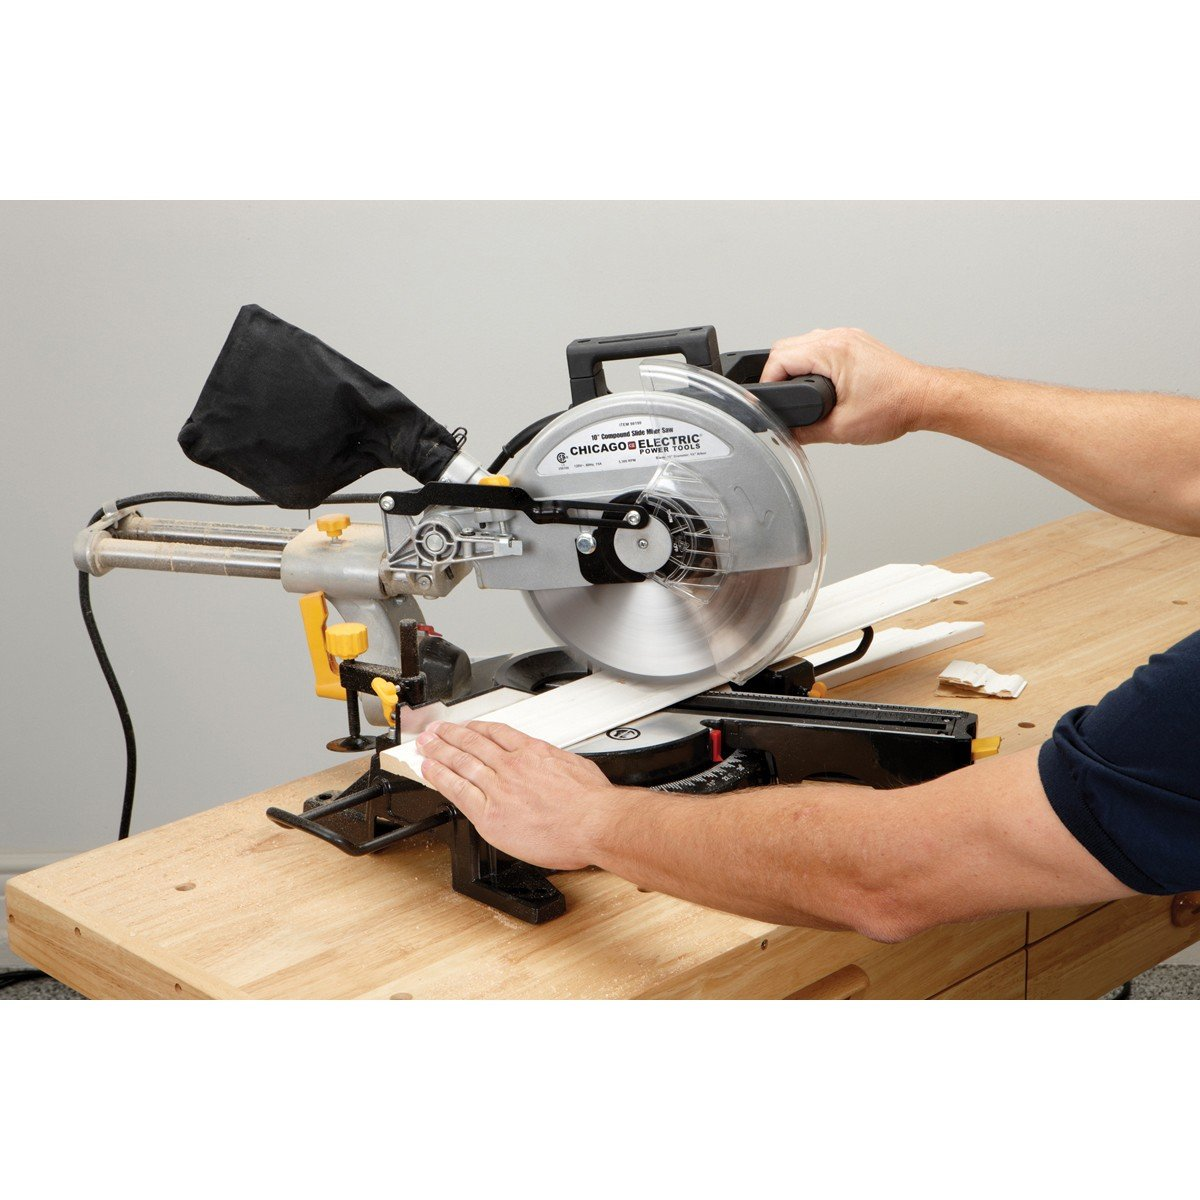 10 inch sliding compound miter saw with 45 degree bevel and dust bag 10 inch sliding compound miter saw with 45 degree bevel and dust bag extension bars and table clamp power miter saws amazon greentooth Choice Image